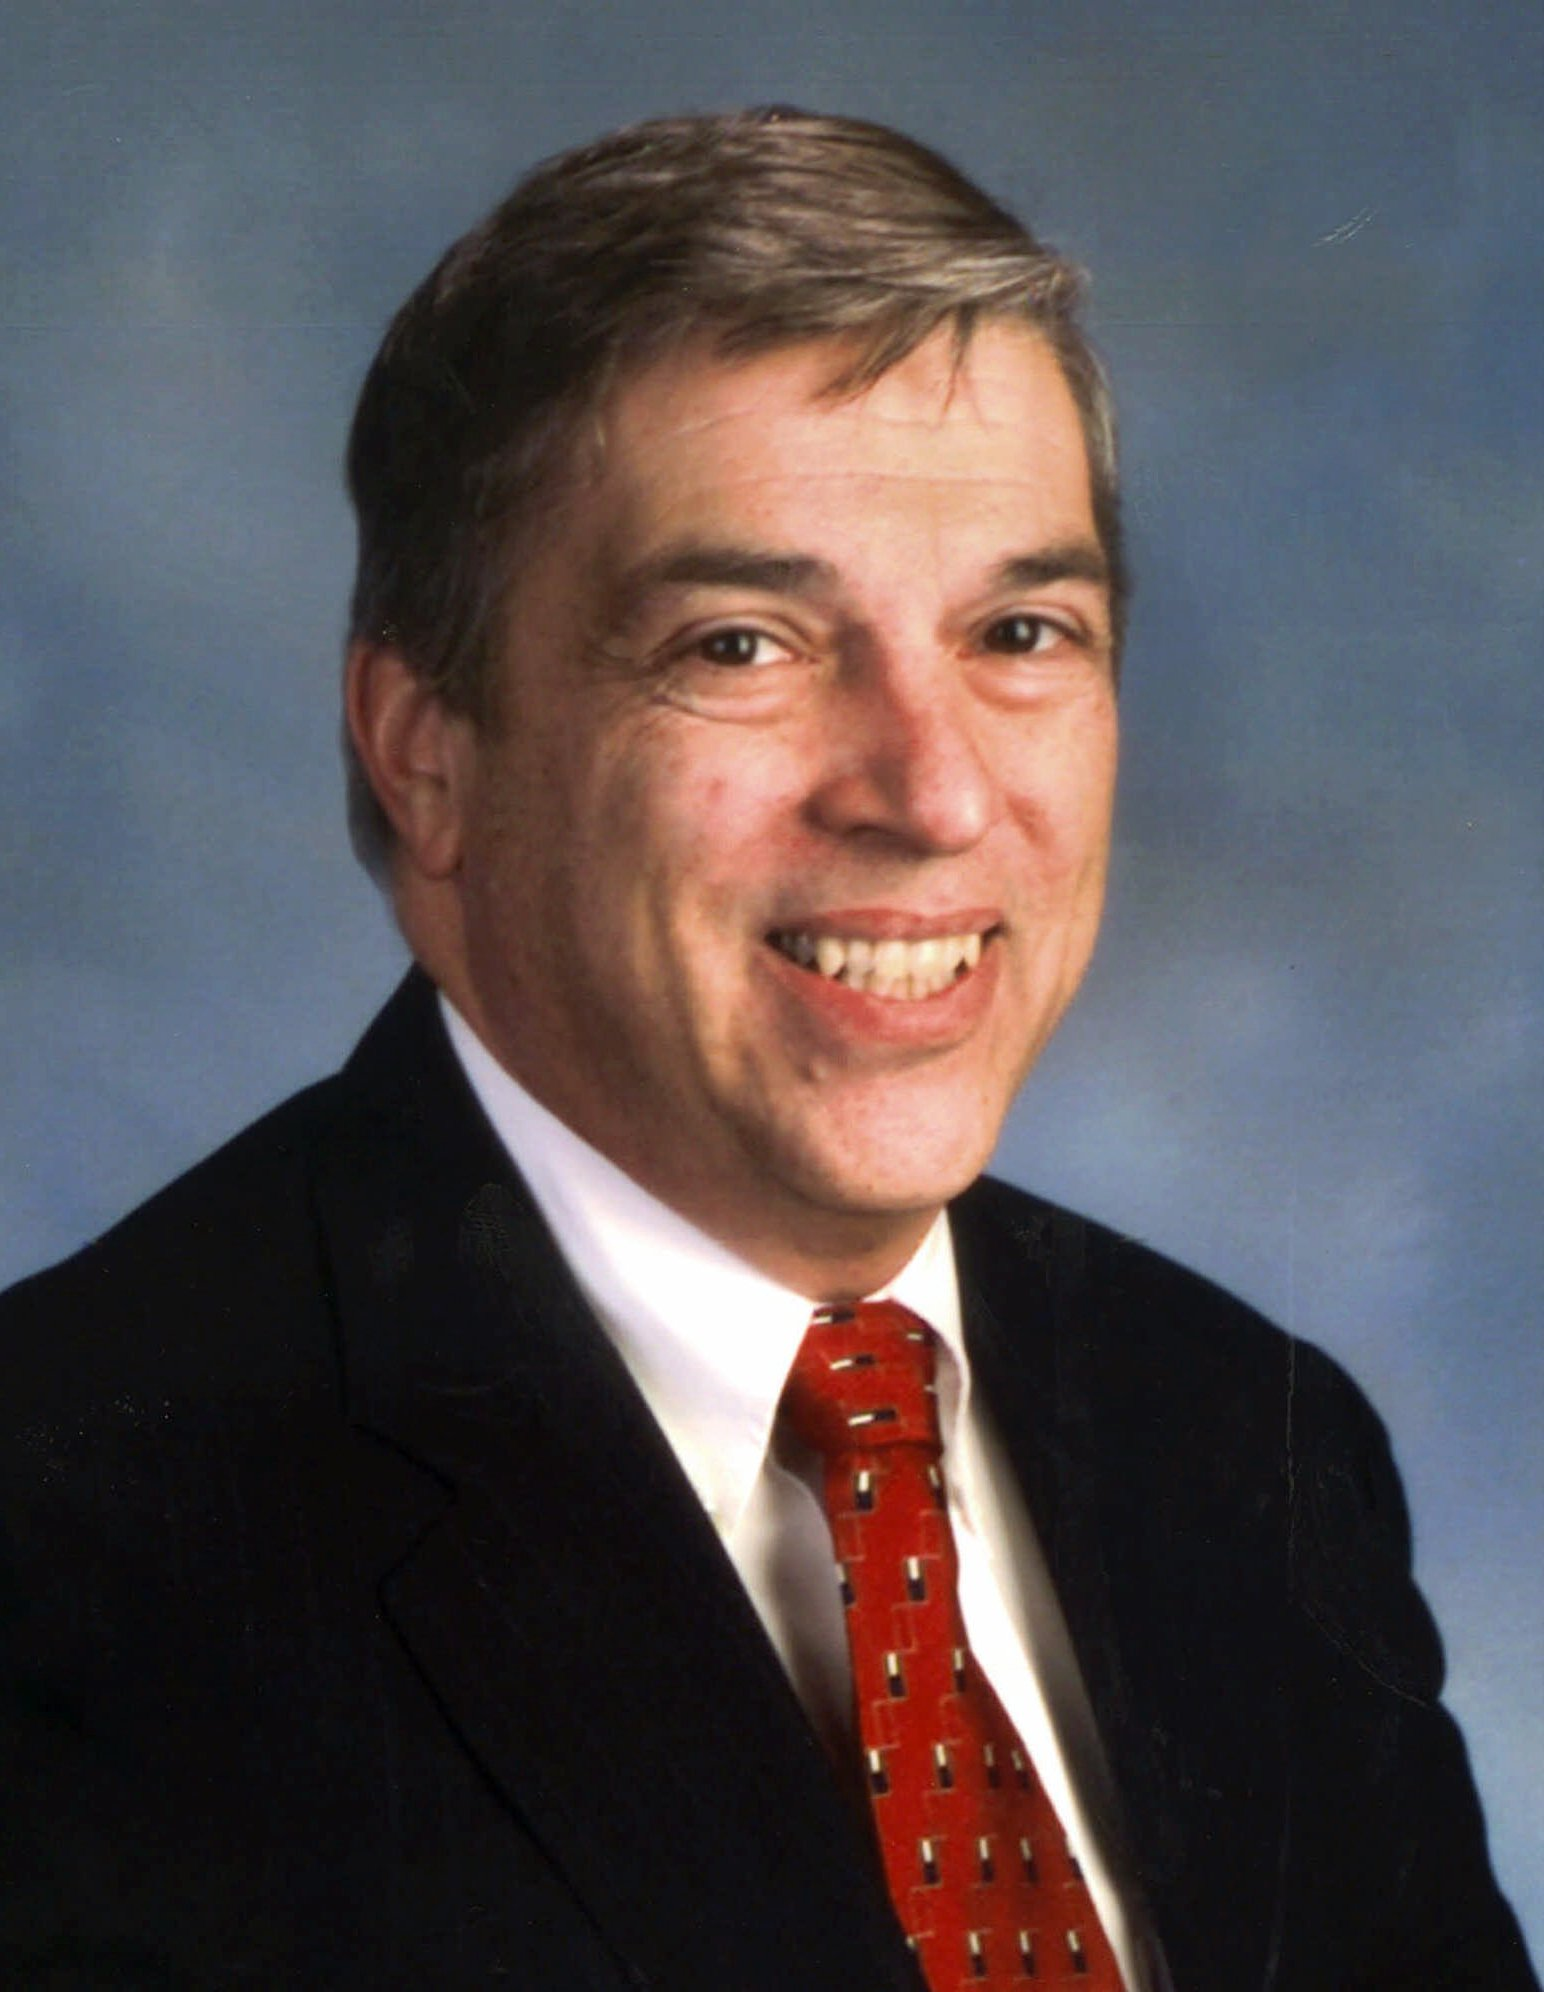 """Former FBI agent Robert Hanssen started spying for the Soviet Union in 1985, but wasn't arrested until 2001. Under the code name """"Ramon,"""" Hanssen passed along U.S. intelligence documents, including the names of American recruits whom Soviet agents later executed. He received about $600,000 for his spy efforts. In 2002, Hanssen was sentenced to life in prison without the possibility of parole."""